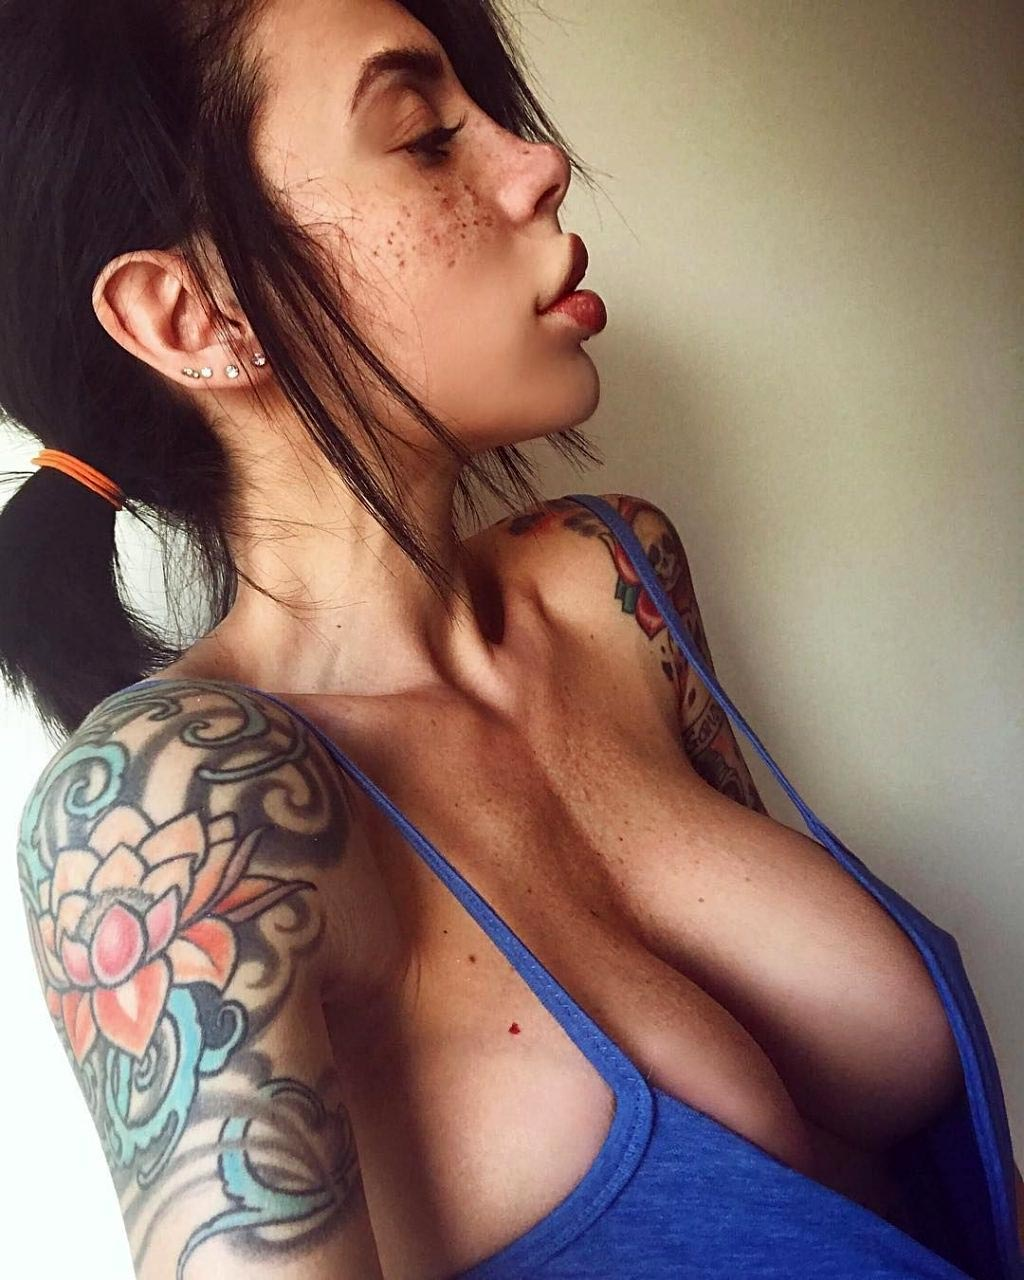 braless Pussy Alexis Mucci naked photo 2017